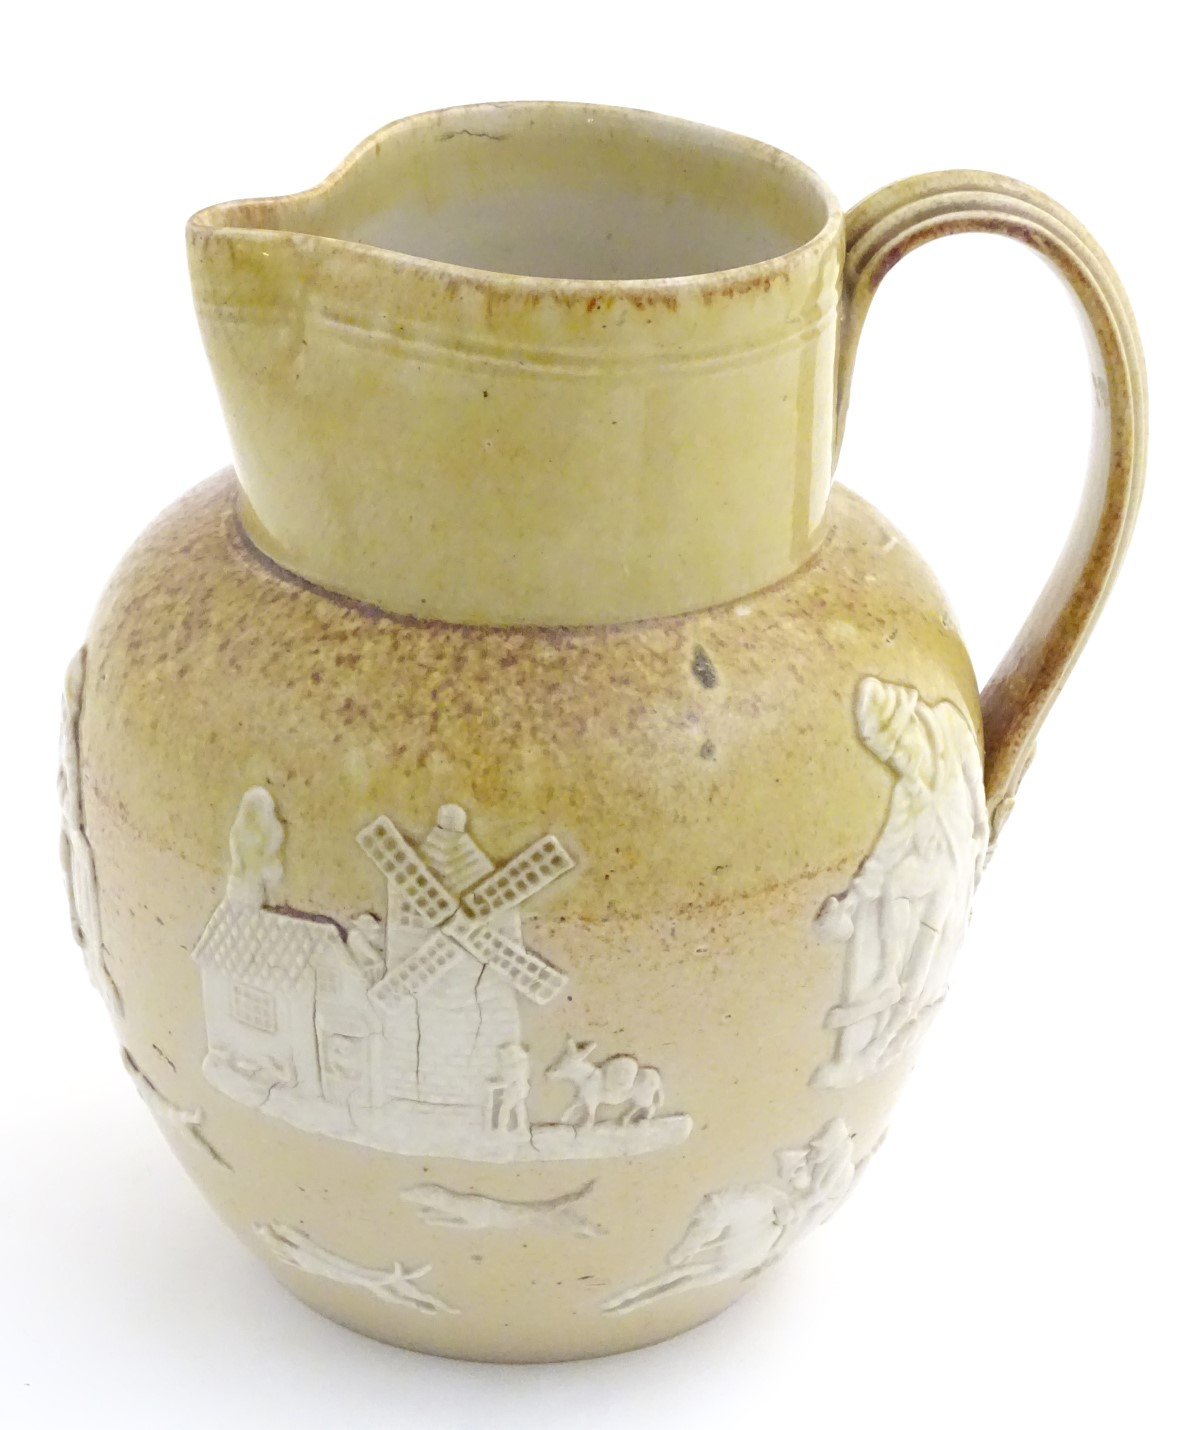 Lot 58 - A Royal Doulton salt glaze jug with relief decoration of harvest and hunting scenes,